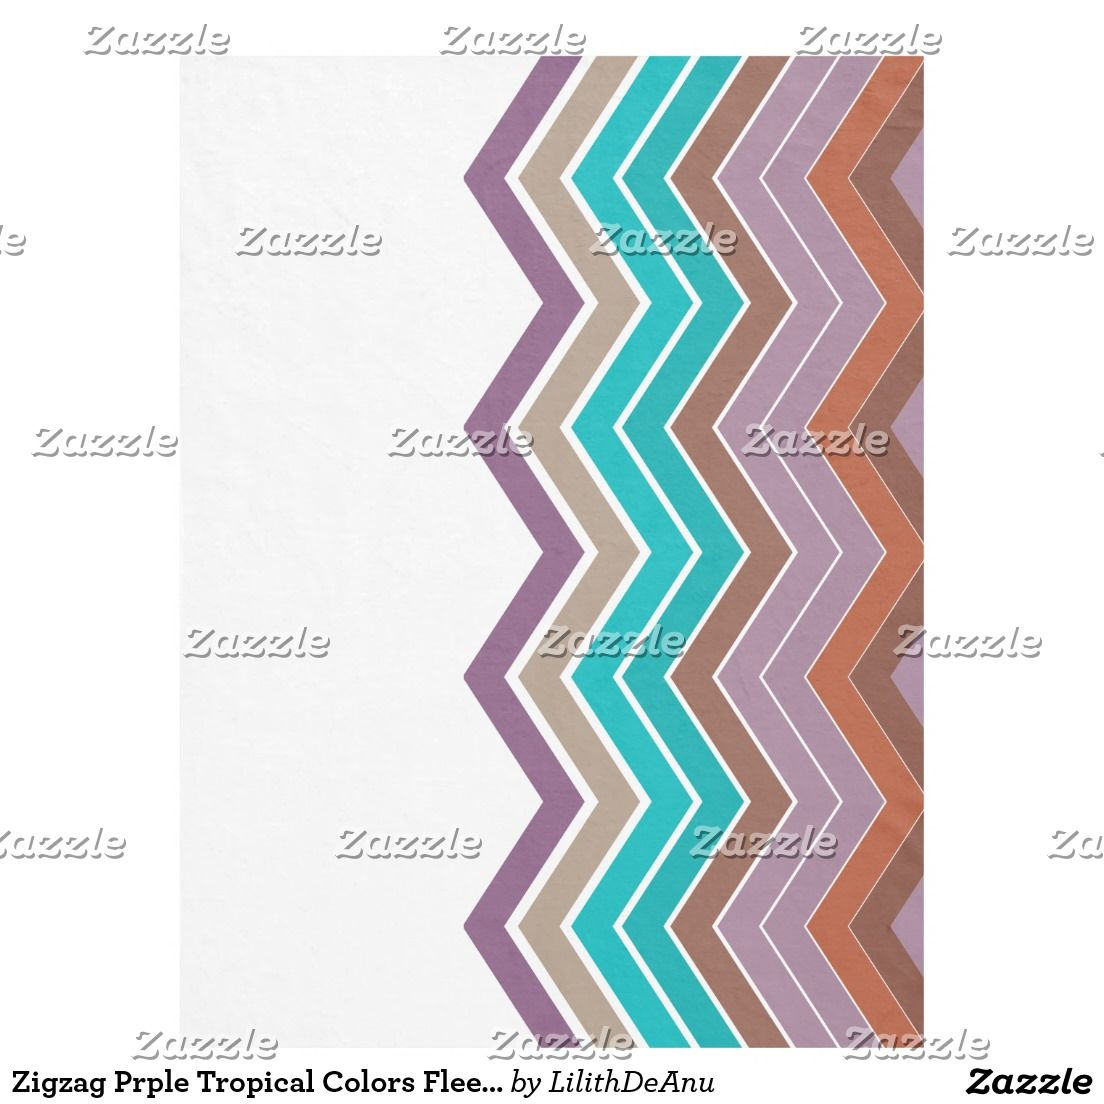 Zigzag Prple Tropical Colors Fleece Blanket